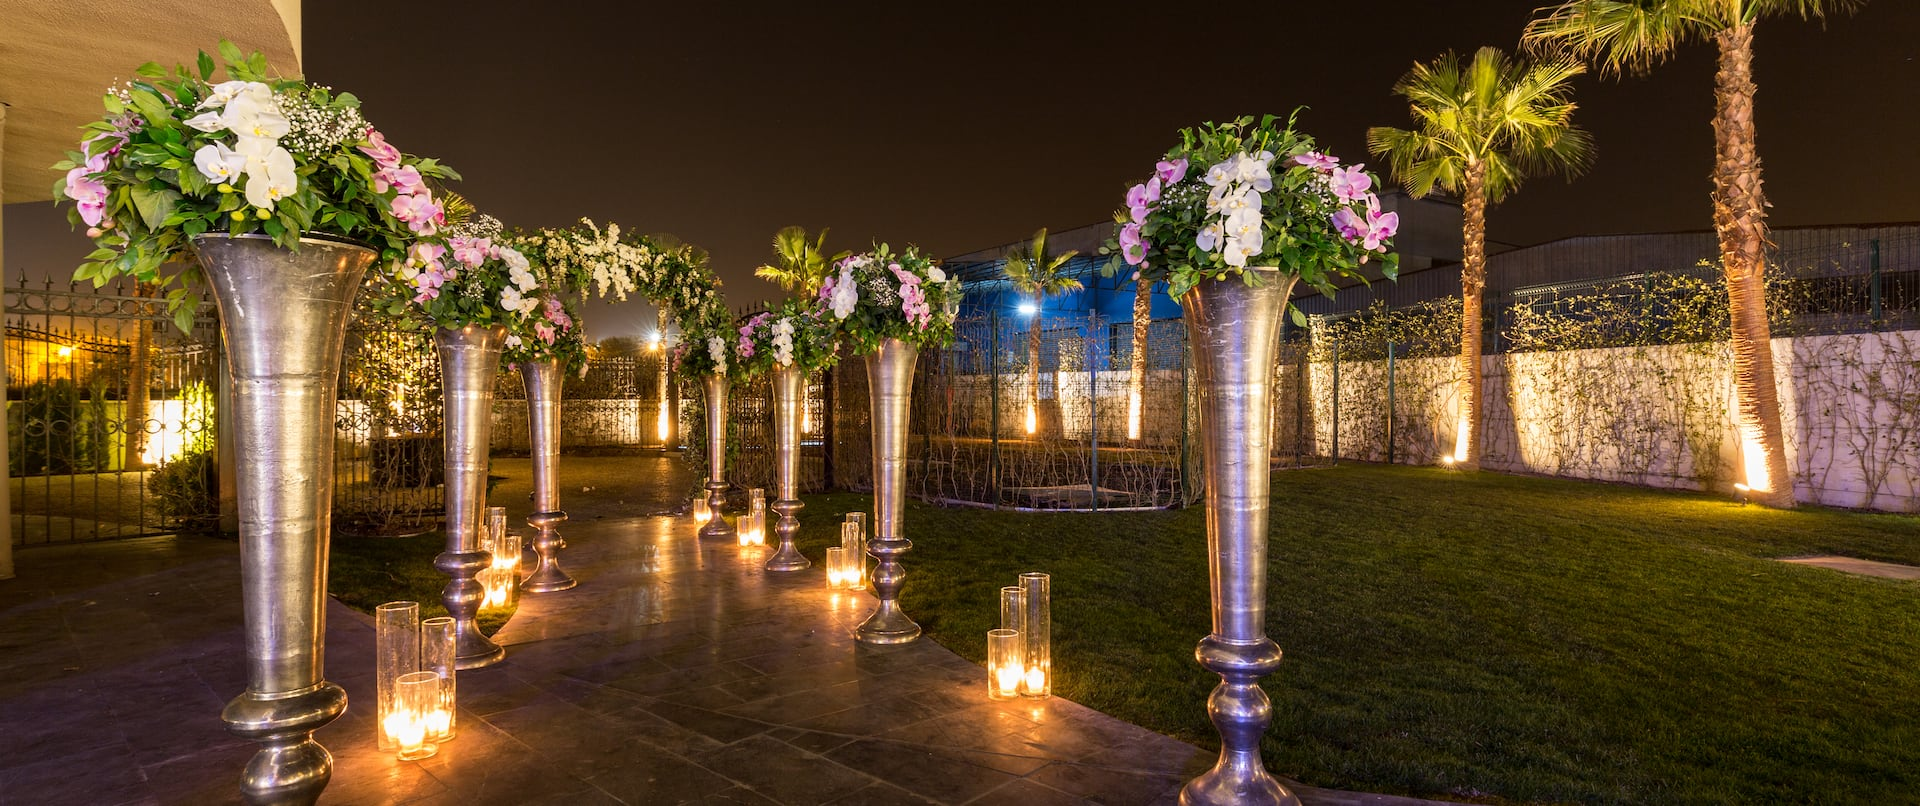 Floral Display and Candles on Walkway Decorated for Night Wedding